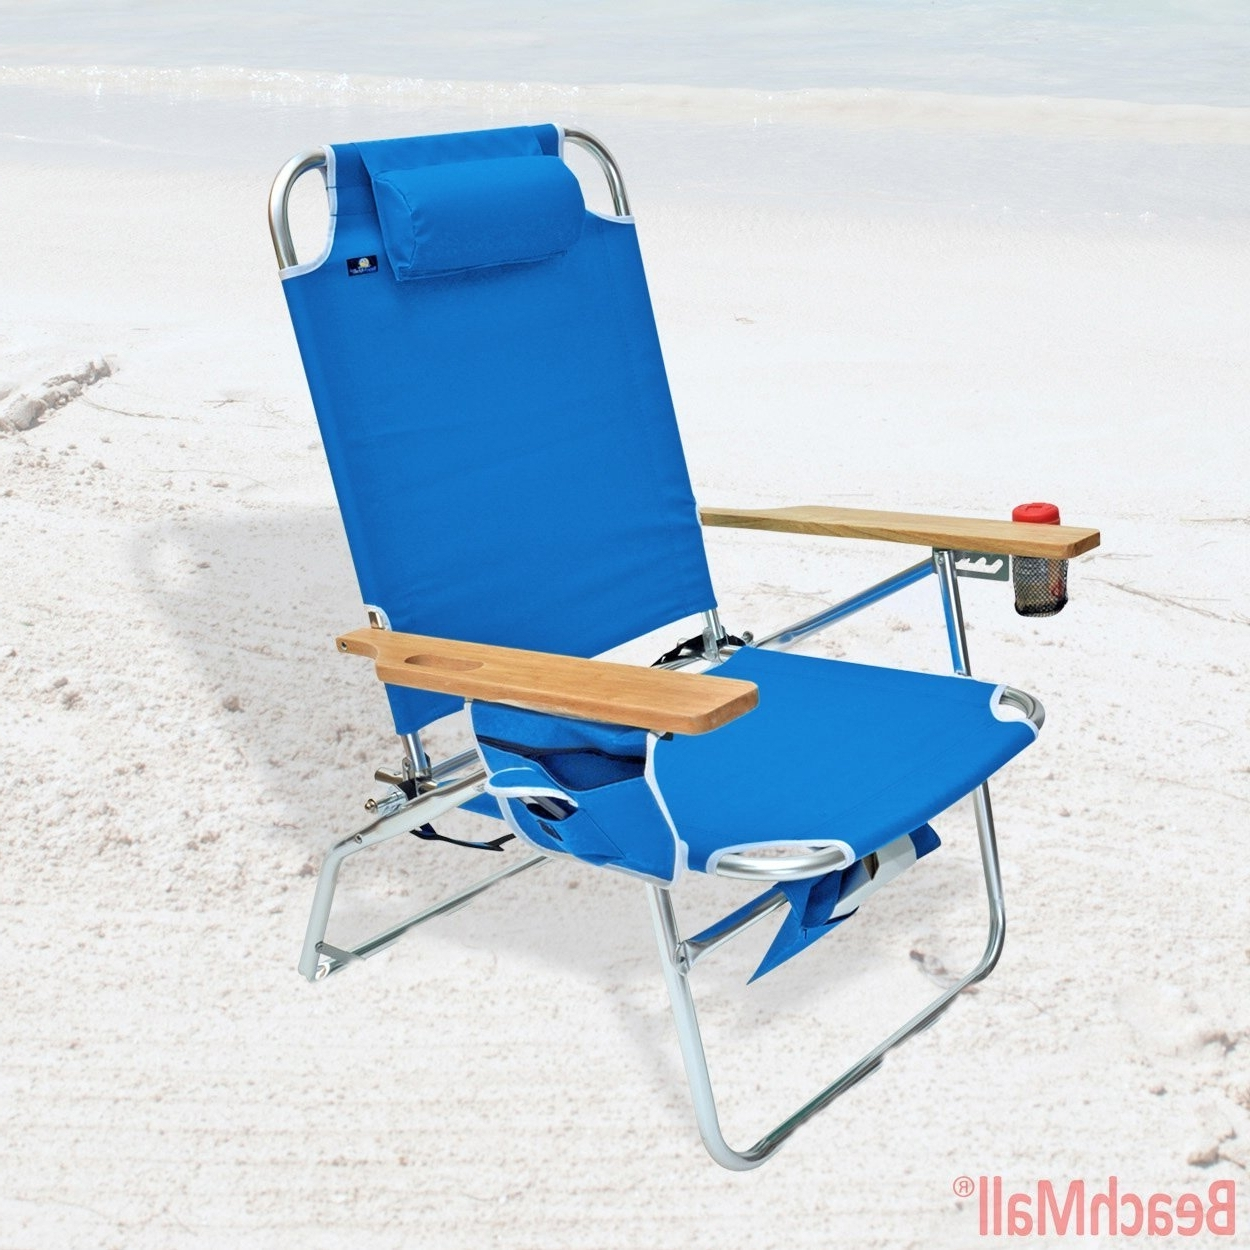 2018 Heavy Duty Beach Lounge Chairs • Lounge Chairs Ideas Regarding Heavy Duty Chaise Lounge Chairs (View 2 of 15)